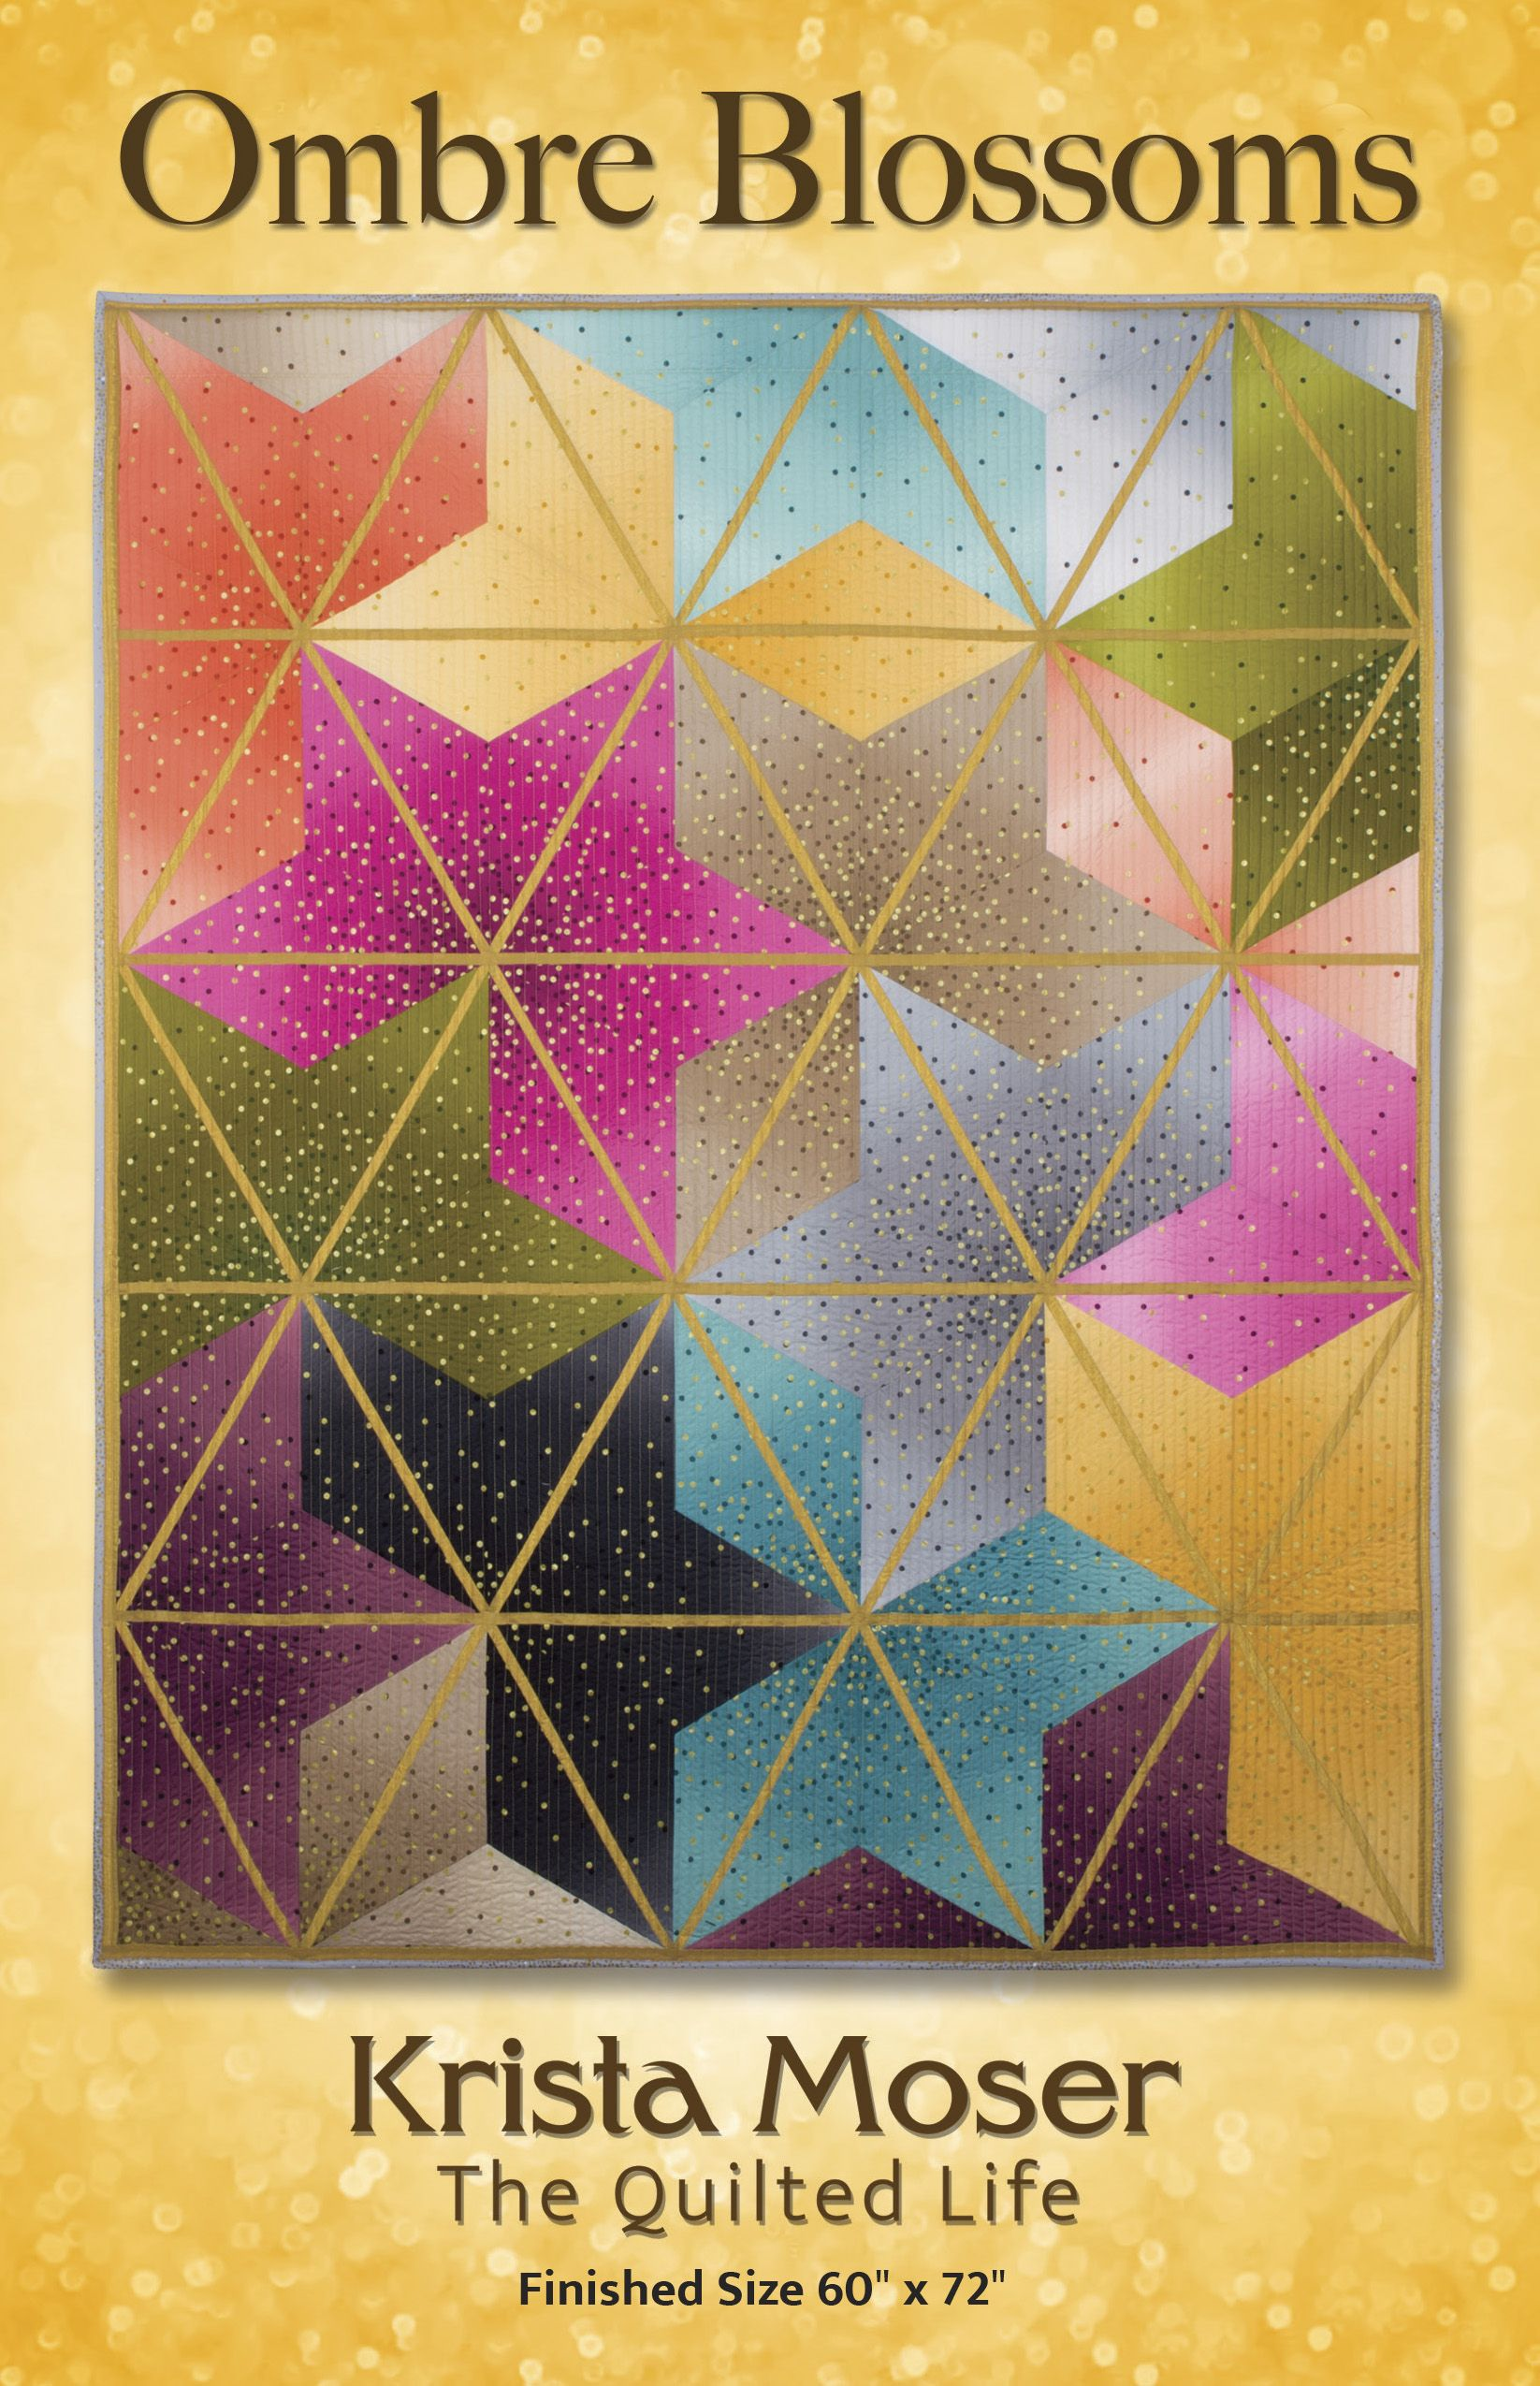 Ombre Blossoms Krista Moser, The Quilted Life | Ombre | Quilts